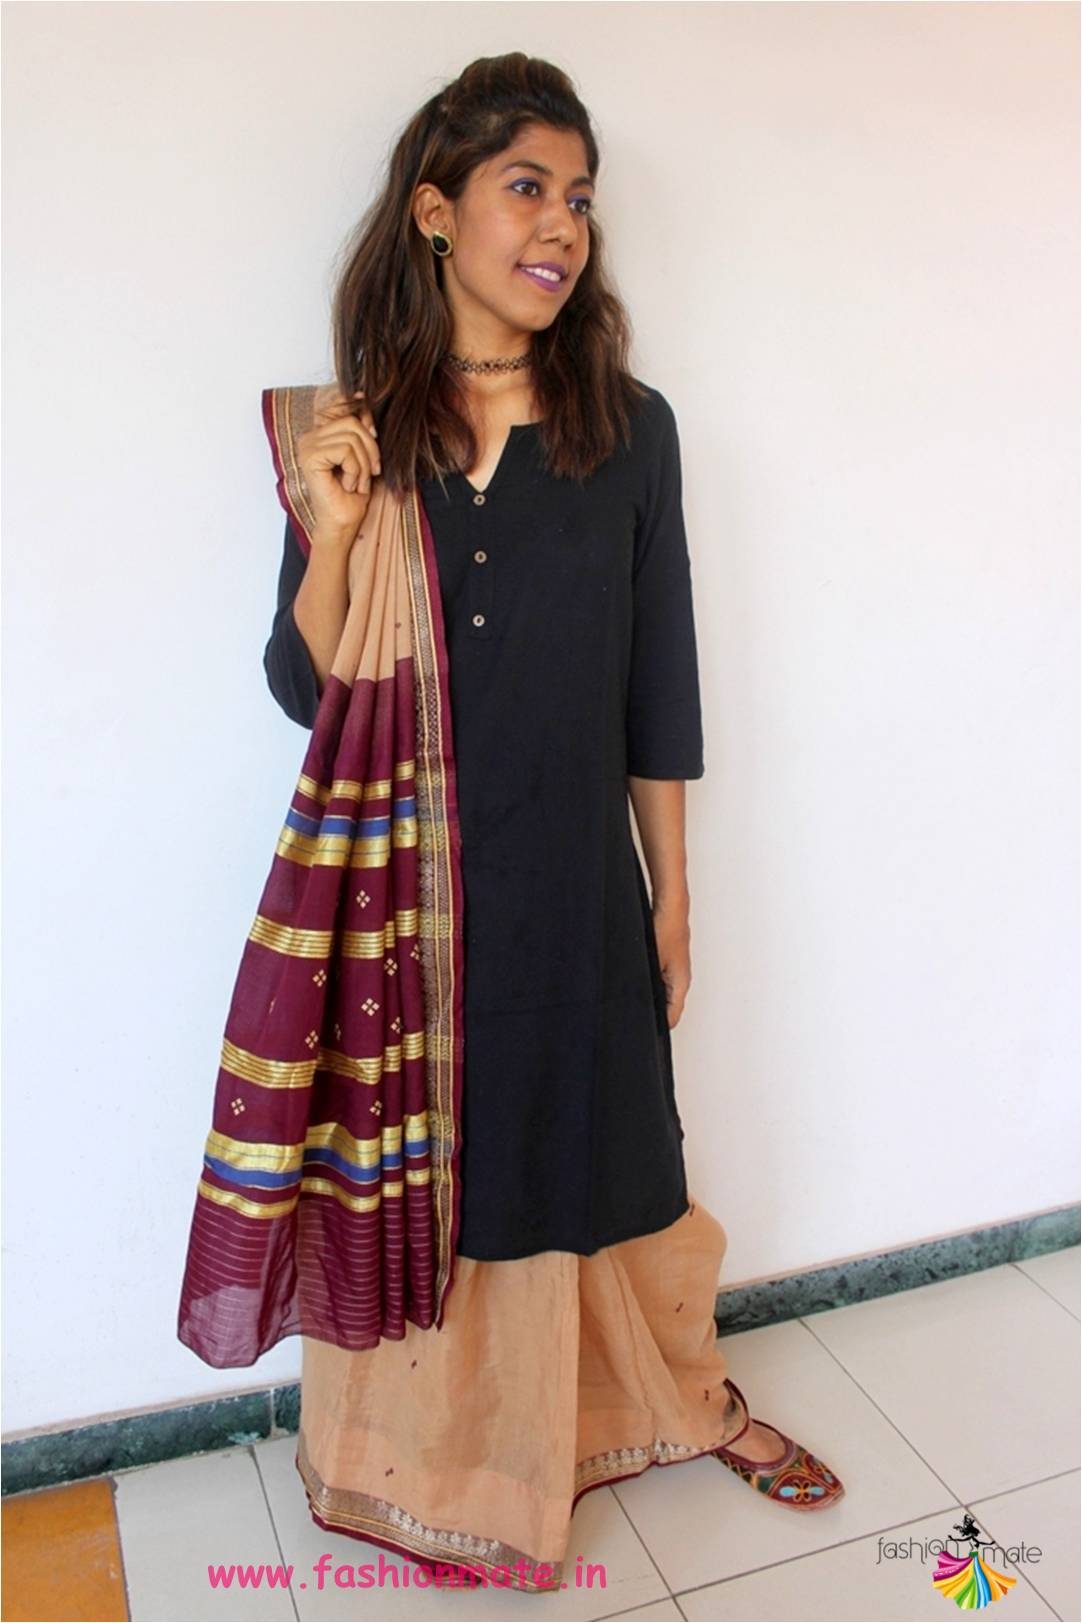 Kurta Saree 2 – How to style your basic black kurta with Cotton Saree